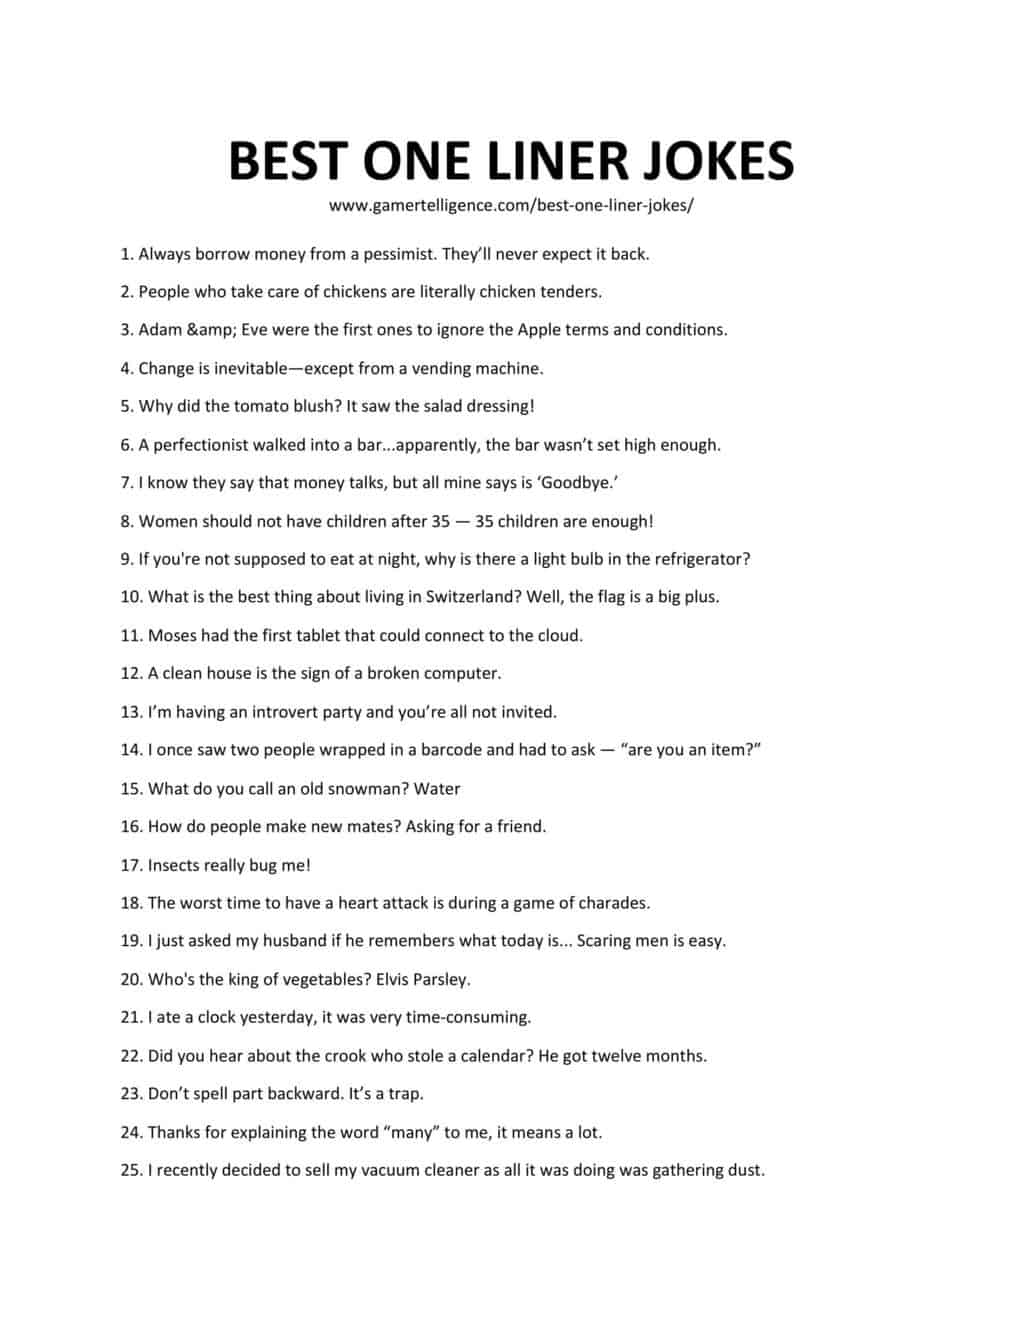 28 Best One Liner Jokes